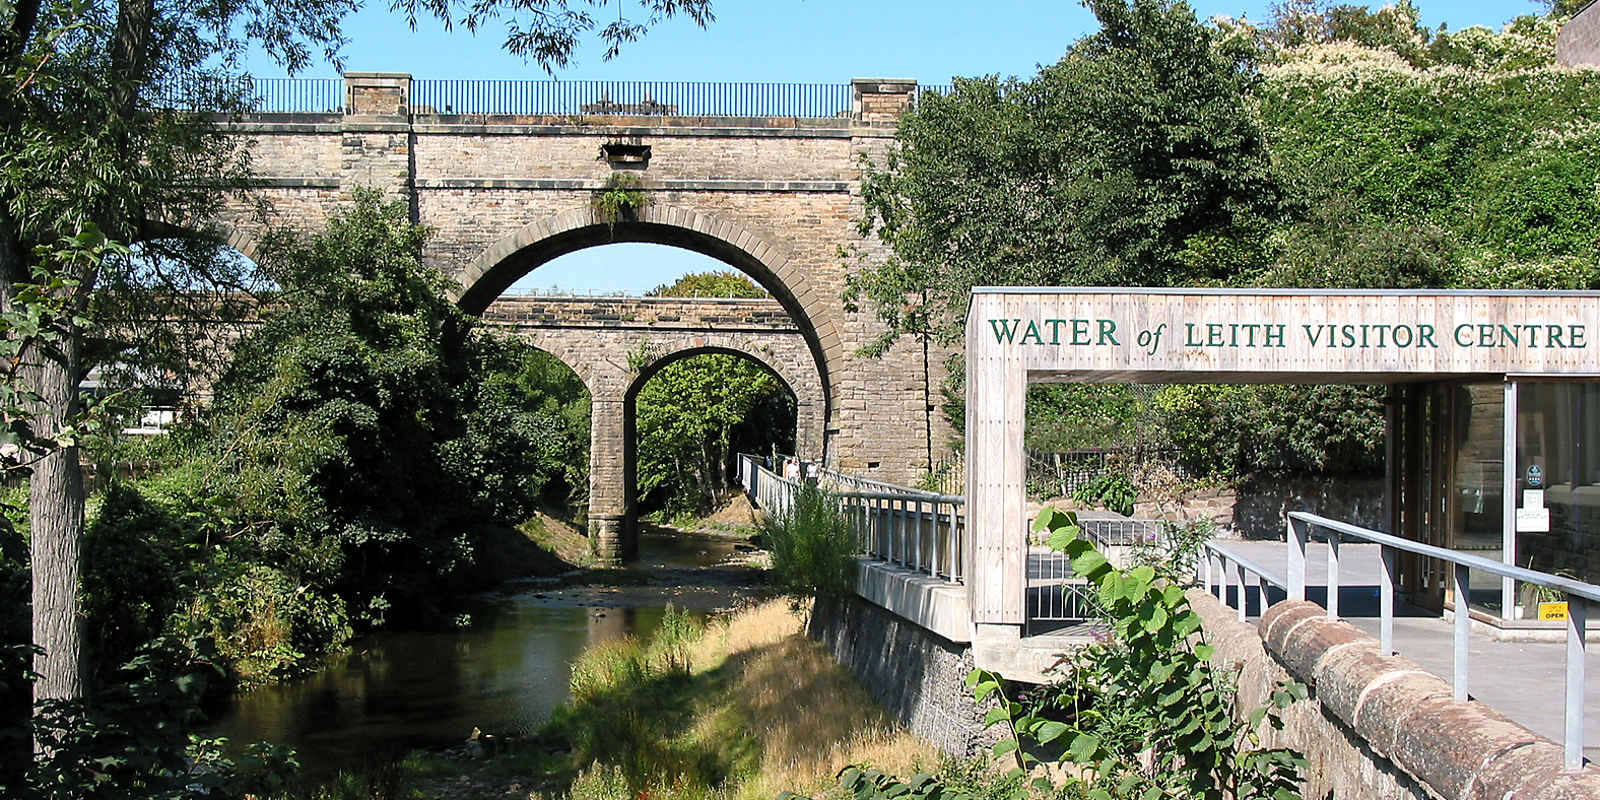 Water of Leith Visitpr Centre with river and arched bridge